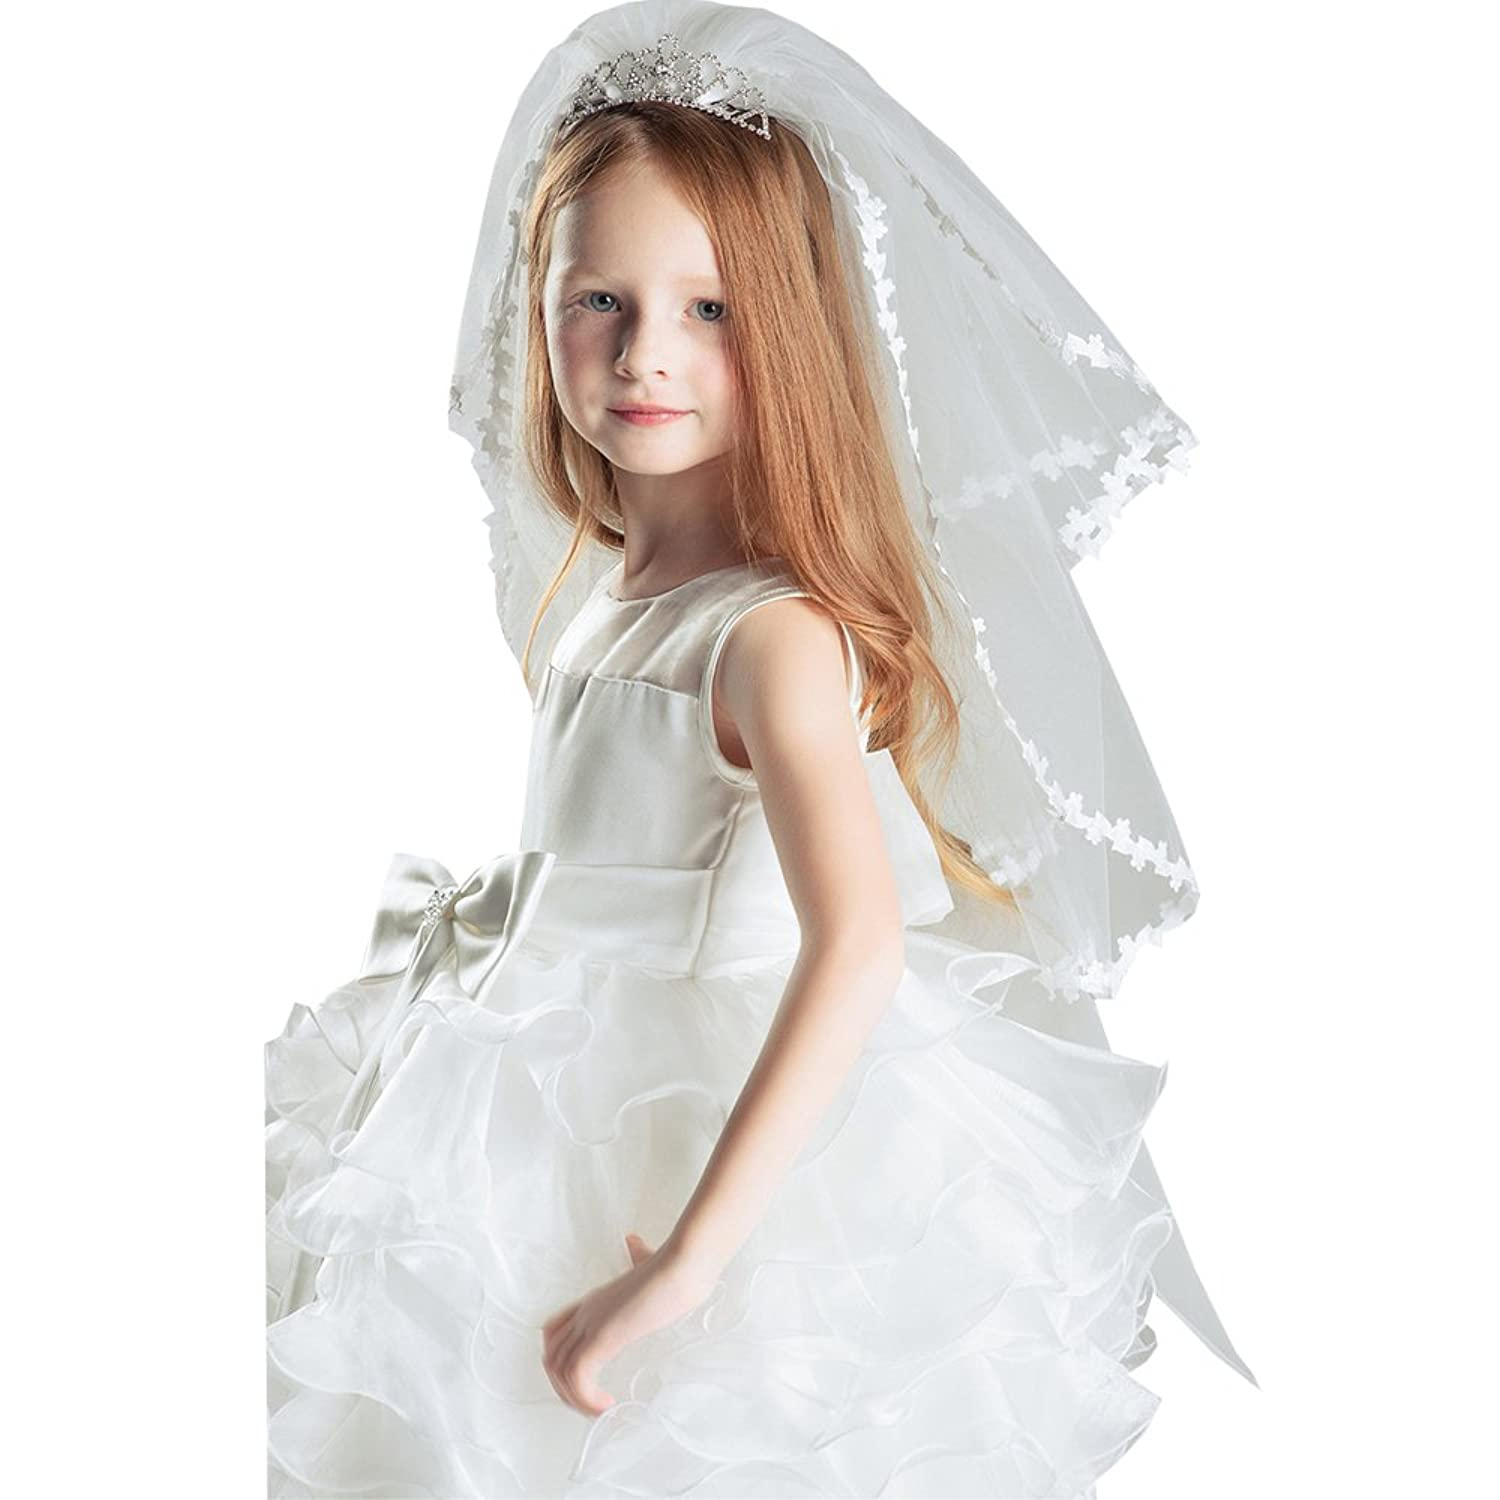 Castle Fairy Girl's Two Layers Crystal Tiara Veil Wedding Communion